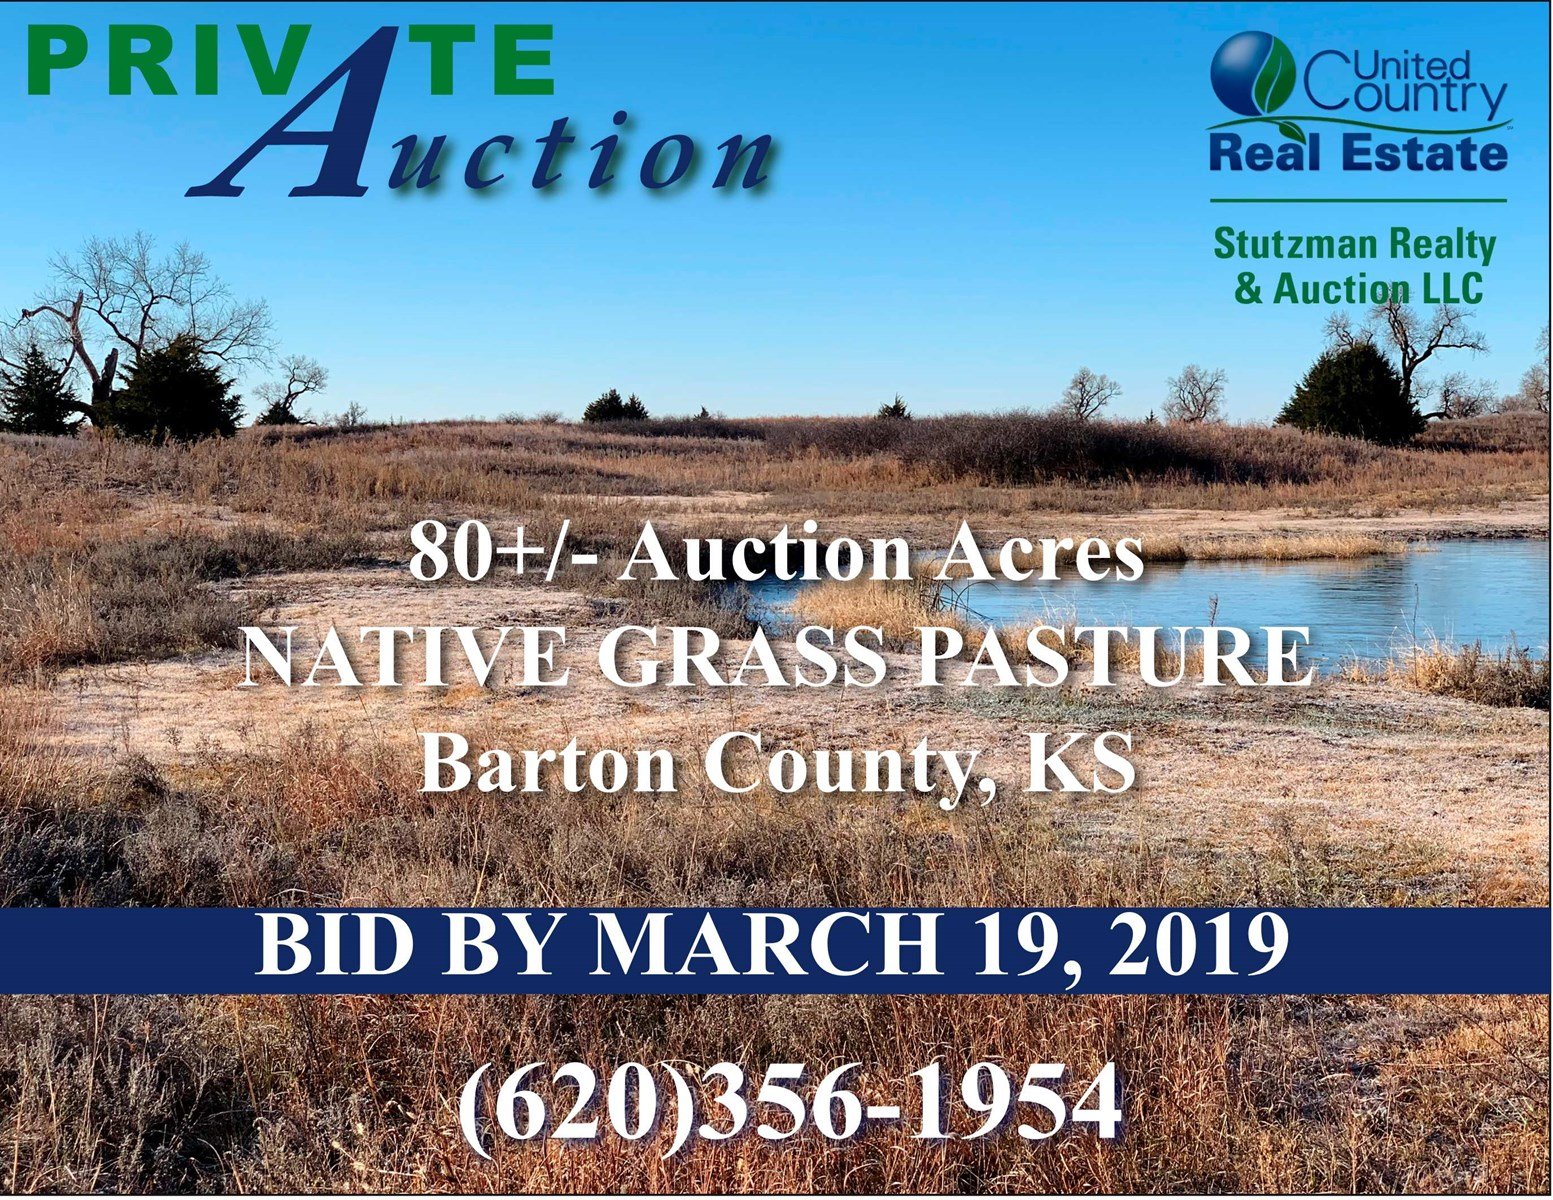 BARTON COUNTY, KS - PRIVATE AUCTION - UNDIVIDED 1/2 INTEREST